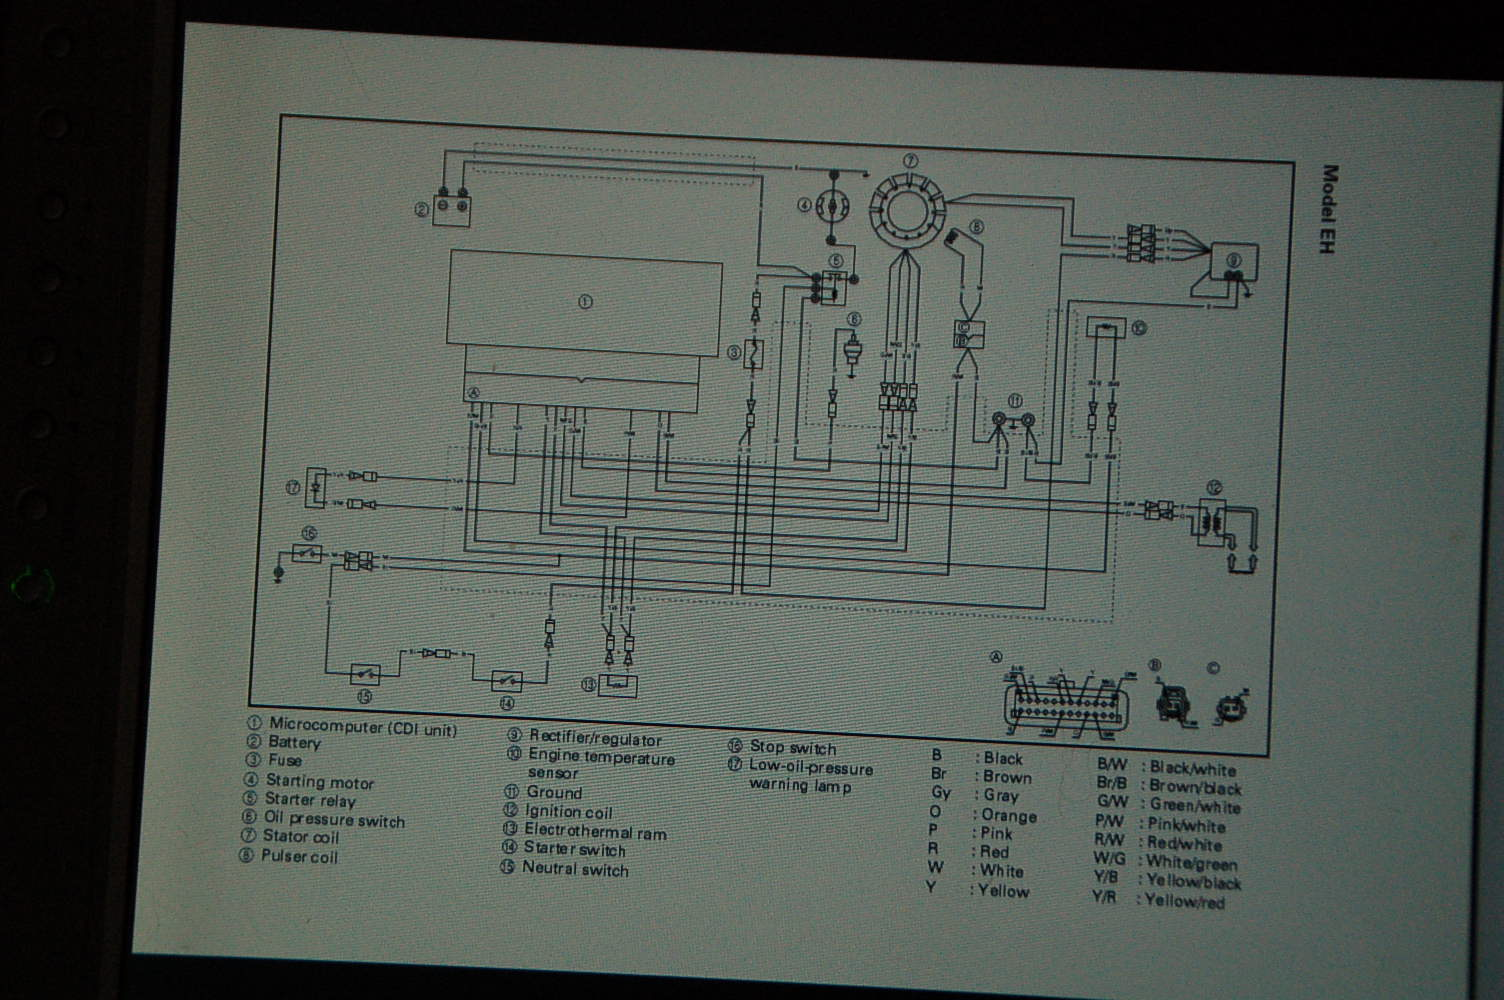 yamaha outboard wiring diagram 2008 yamaha 25 outboard wire honda outboard wiring harness at pacquiaovsvargaslive.co